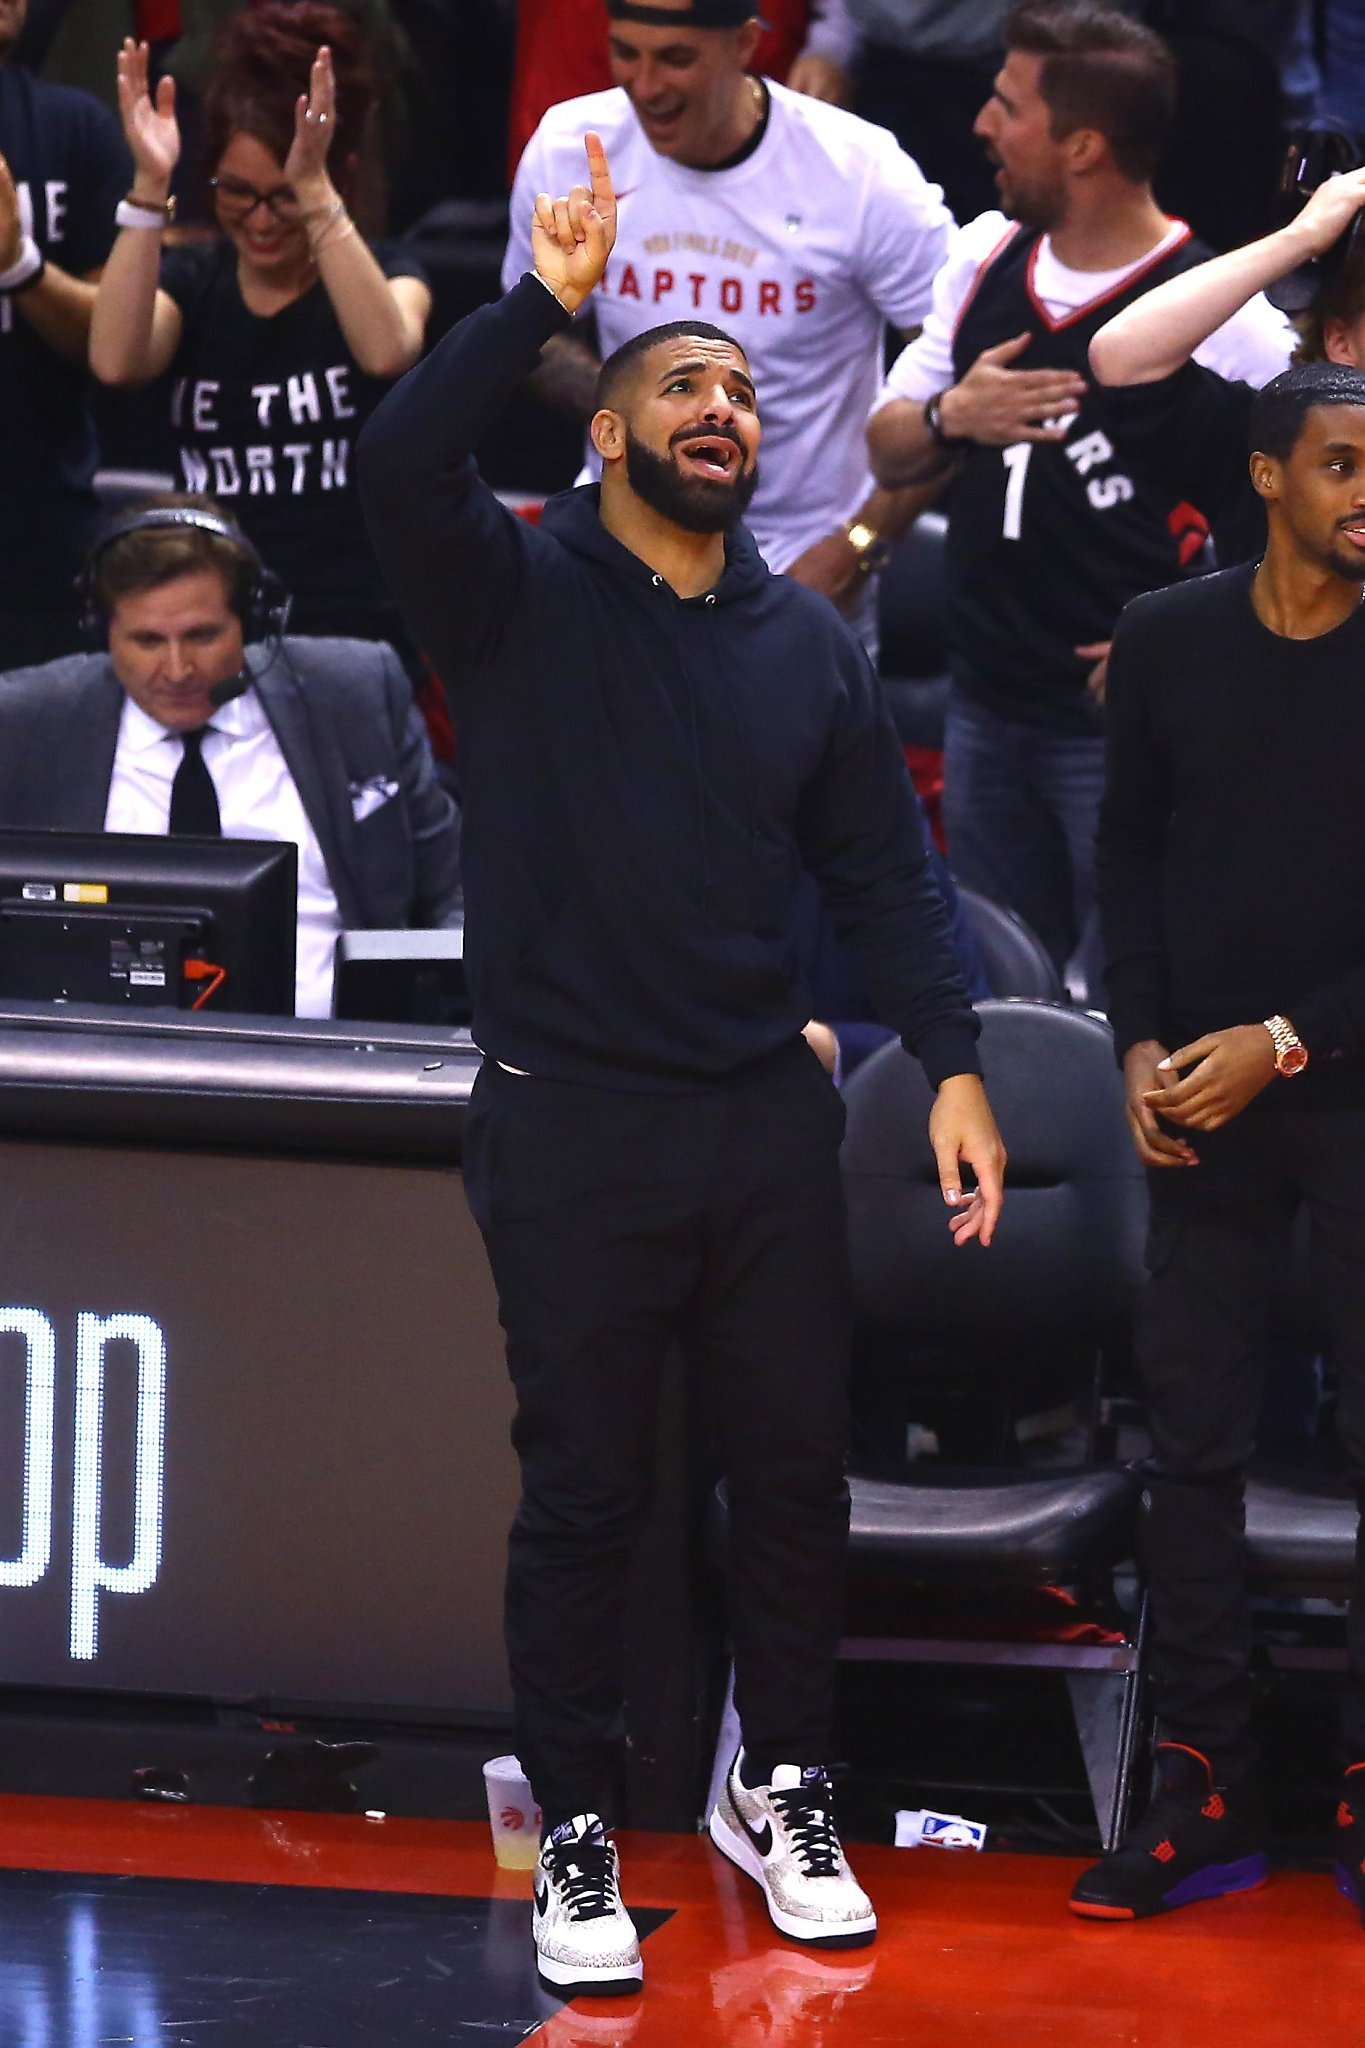 d92cf1368c6 At NBA Finals Game 2, Drake finds a new target for his Warriors trolling:  Kevin Durant - SFGate